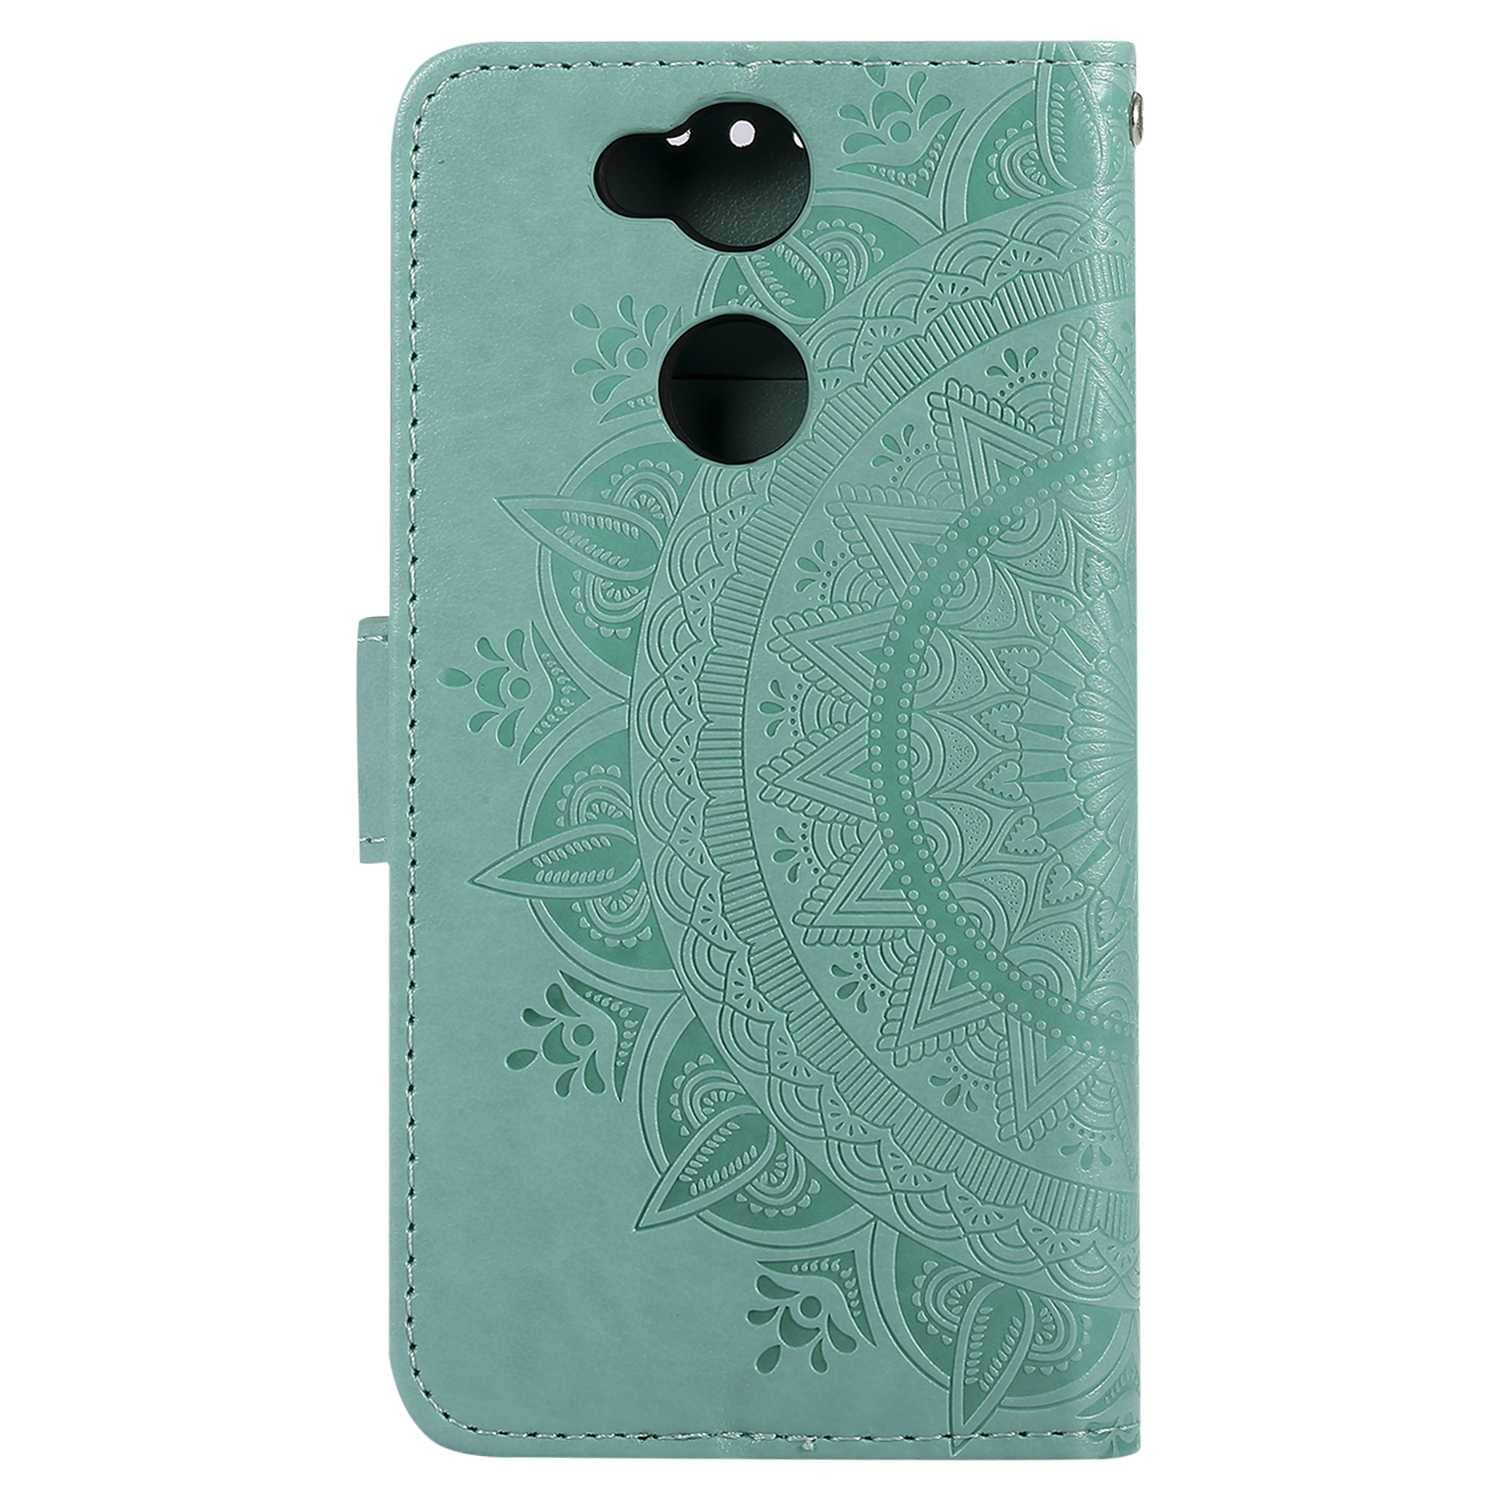 Sony Xperia XA2 Ultra Case The Grafu Leather Case Flip Notebook Cover for Sony Xperia XA2 Ultra Premium Wallet Case with Kickstand Function Card Slots Gold